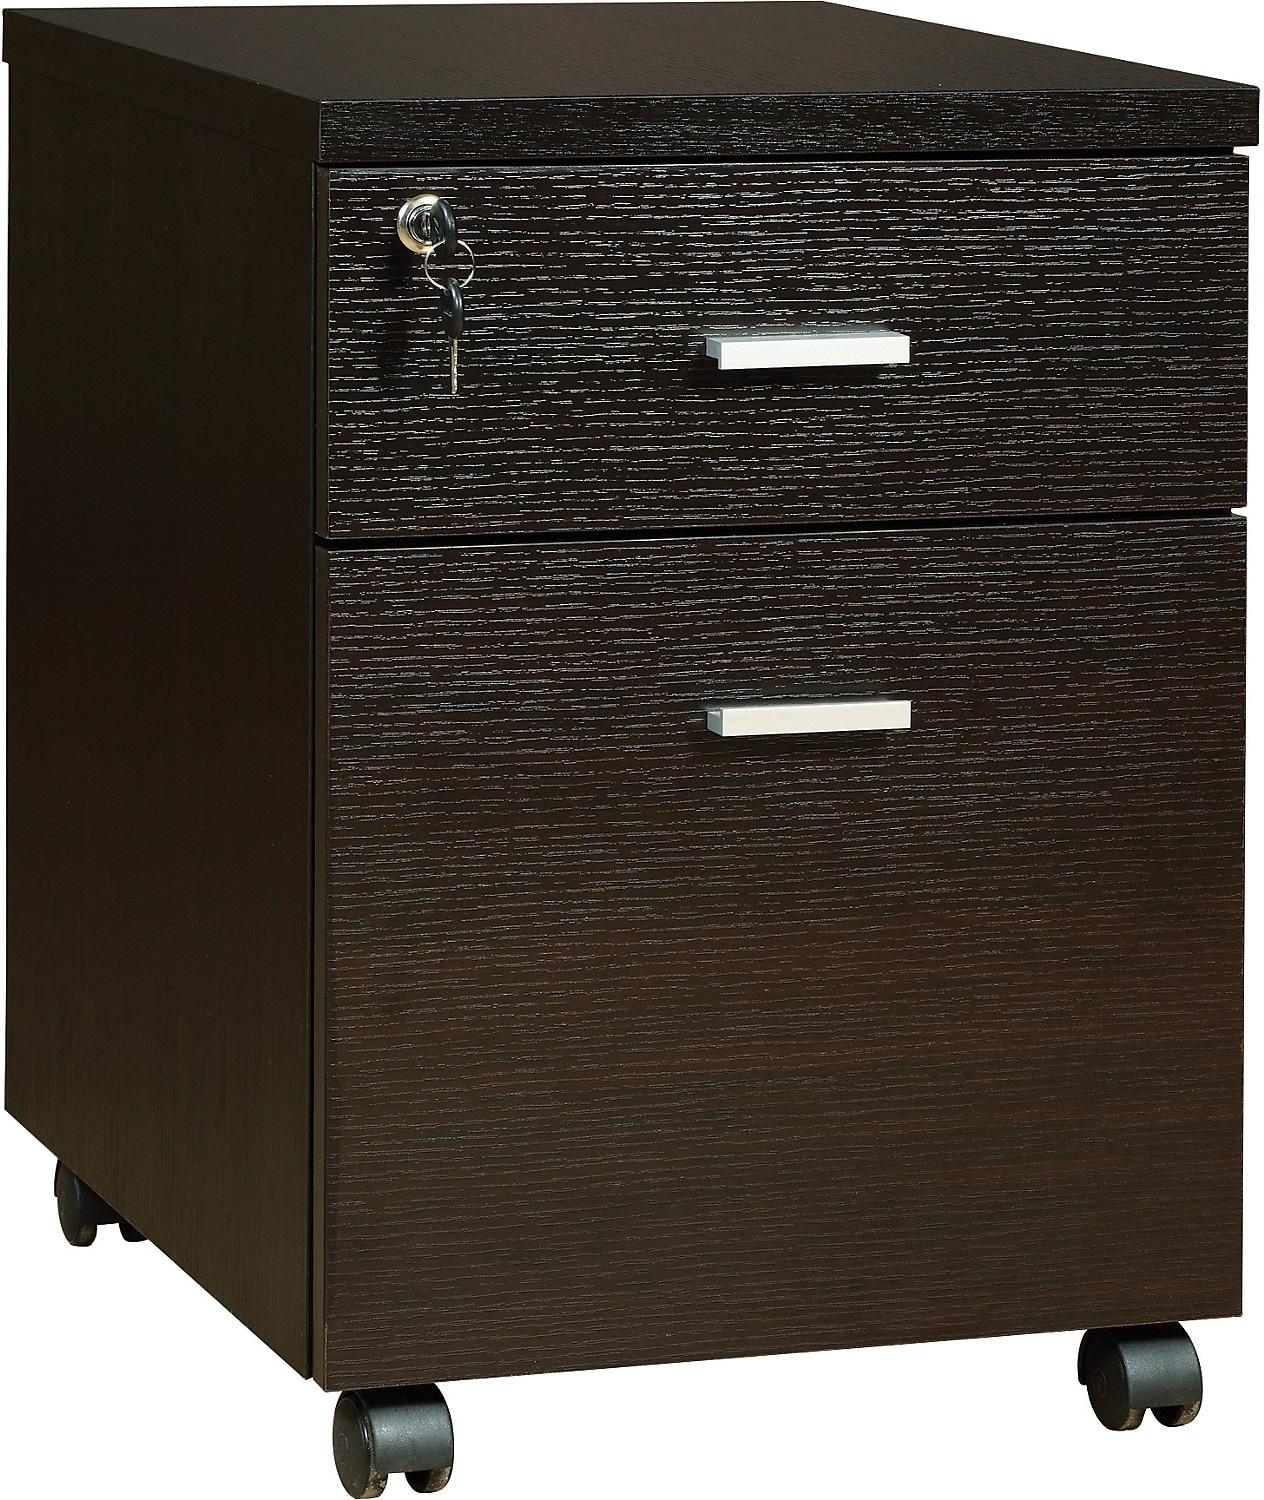 Peyton letter legal filing cabinet the brick for Furniture 7 letters